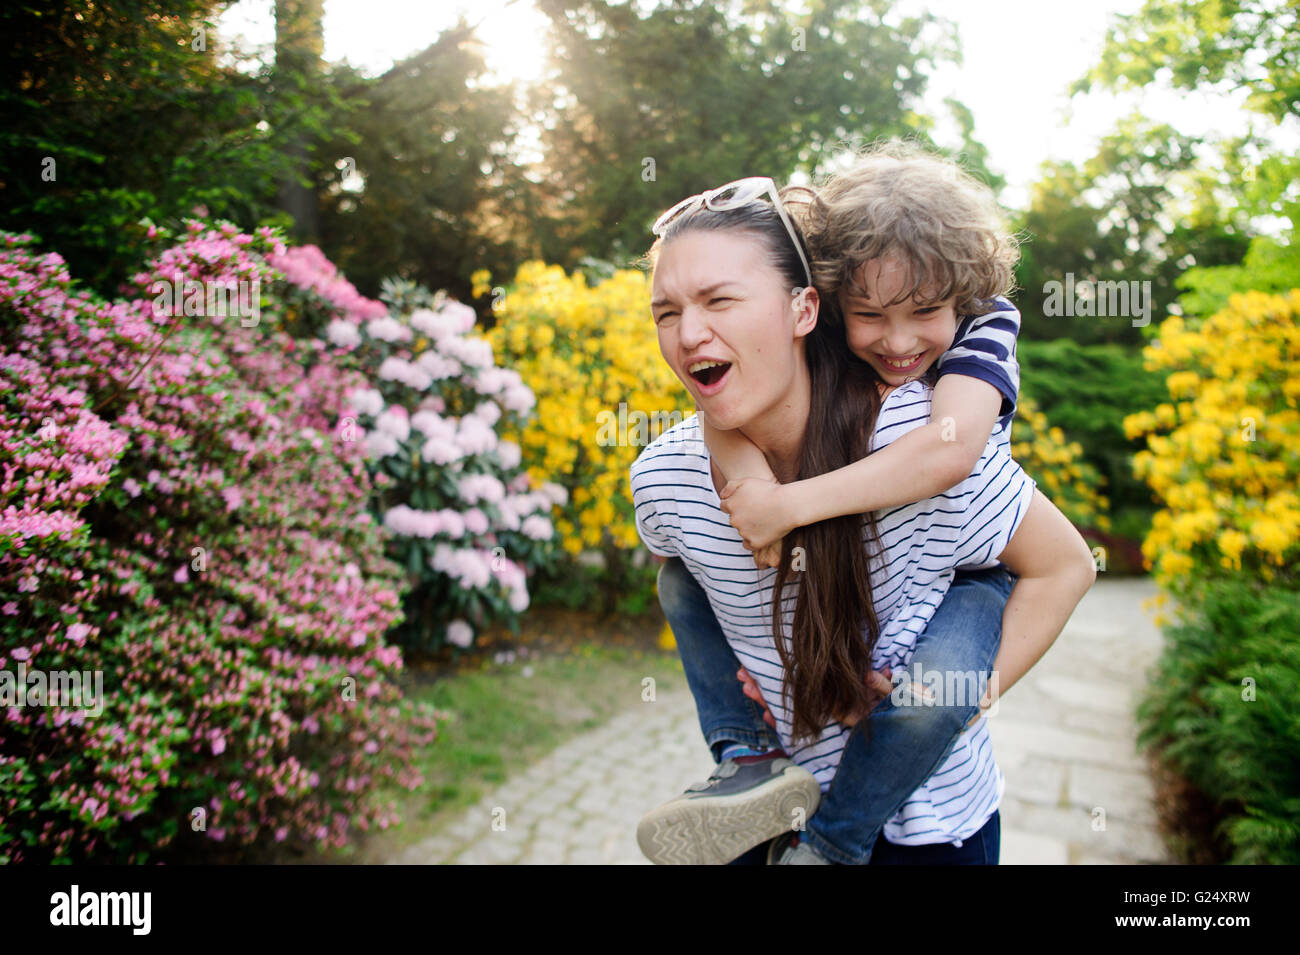 Woman with boy on a walk - Stock Image